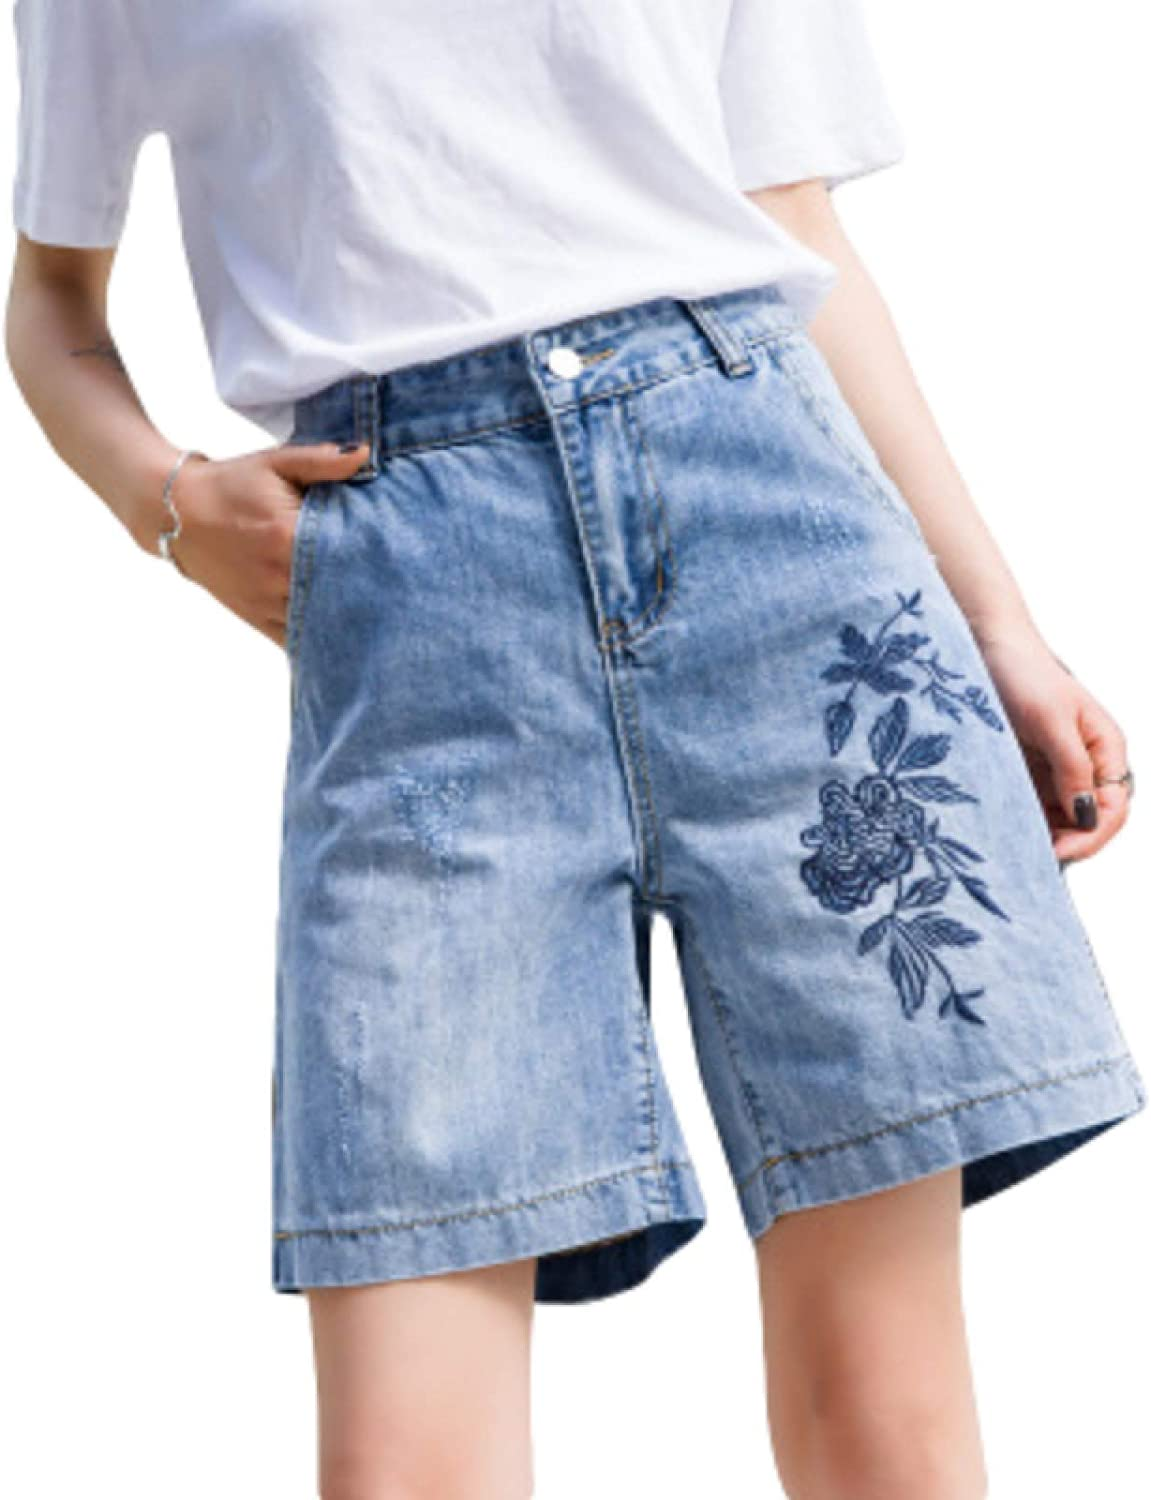 Ladies Personality Unique Embroidery NEW before selling Shorts Design Denim Summer National products